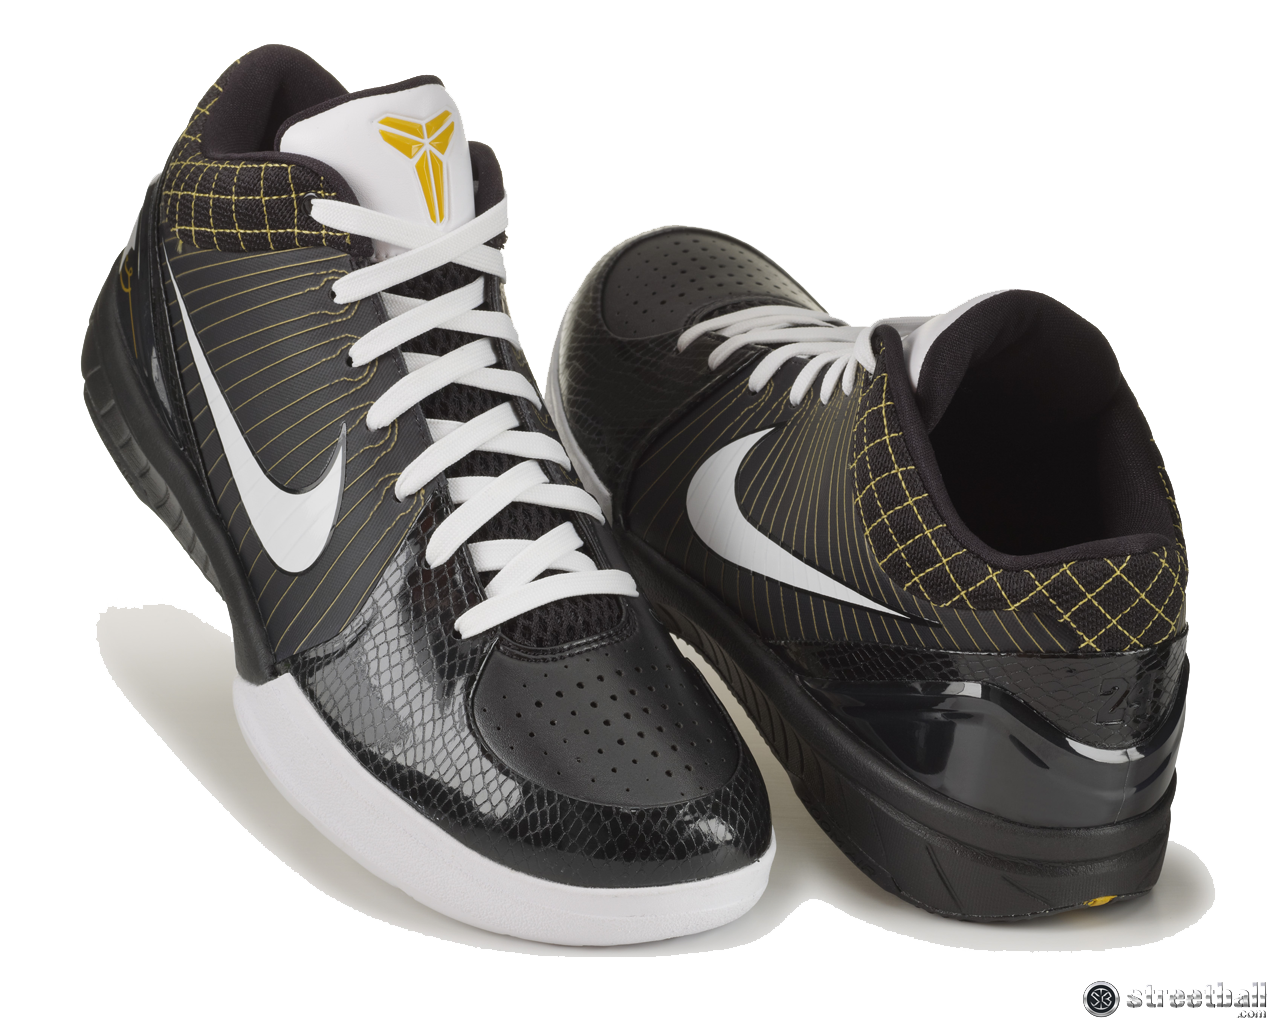 Nike Shoes PNG Image